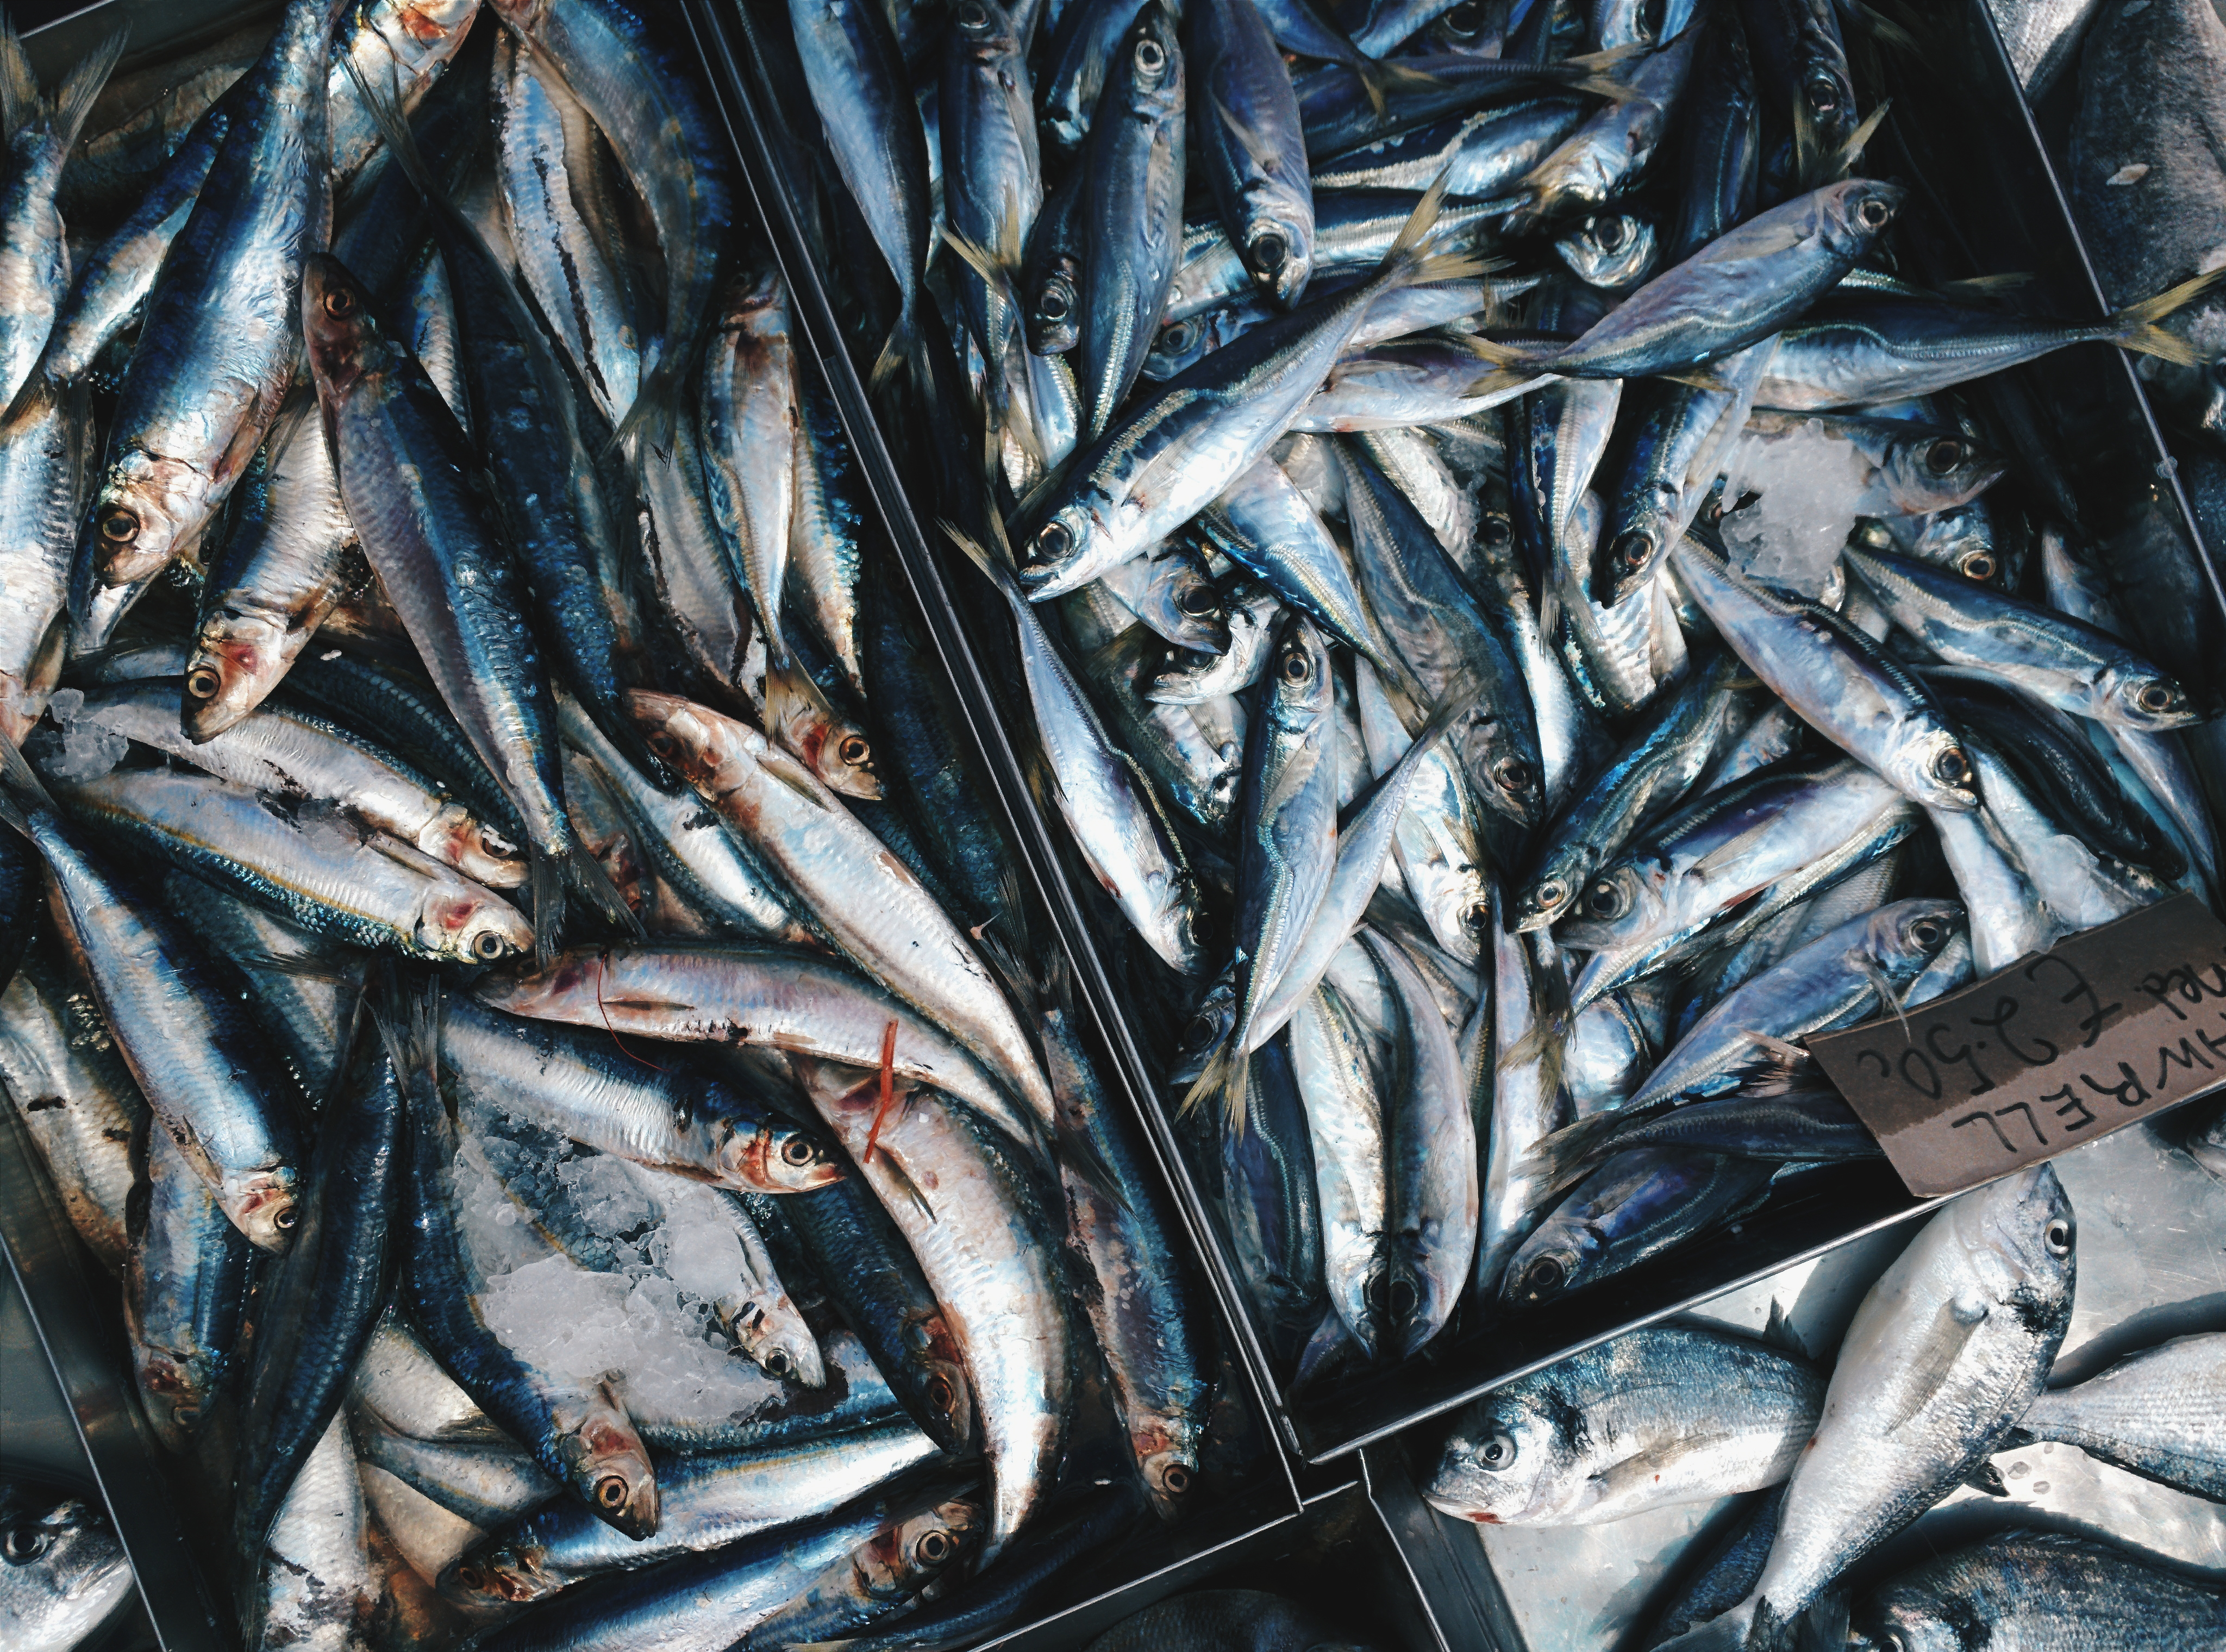 Fresh blue Mackerells at a fish market